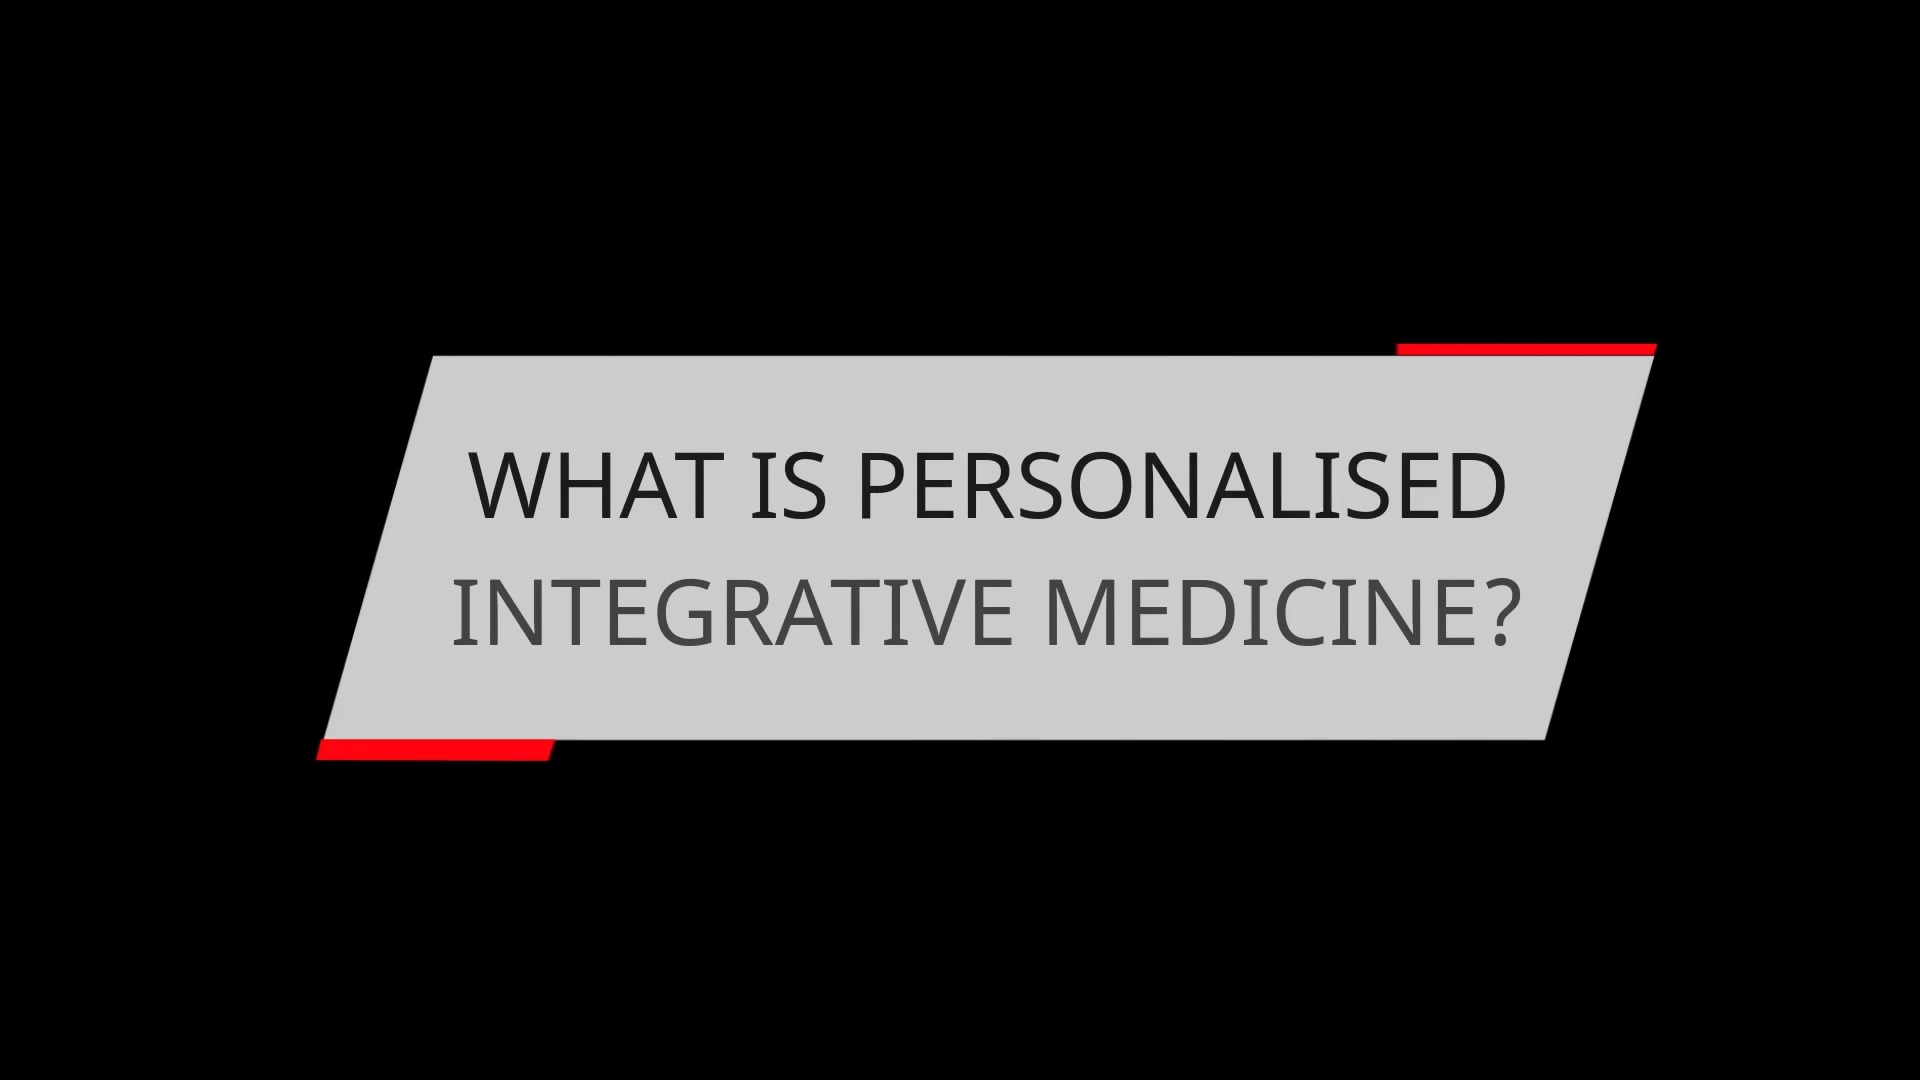 WHAT IS PERSONALISED INTEGRATIVE MEDICINE